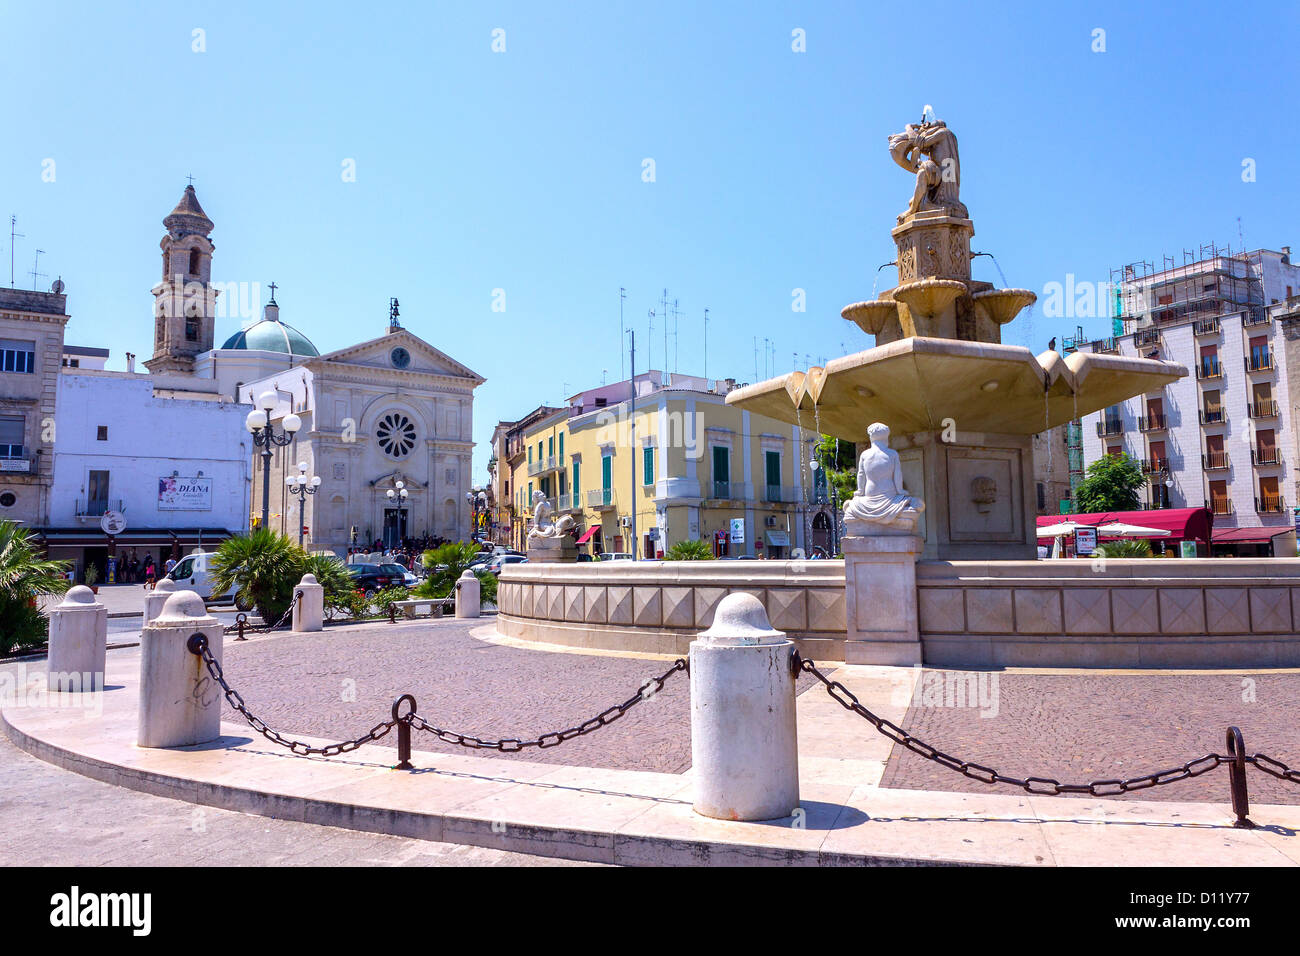 Mola Di Bari Italy  city photo : Italy, Apulia, Mola Di Bari, Piazza Xx Settembre Stock Photo, Royalty ...